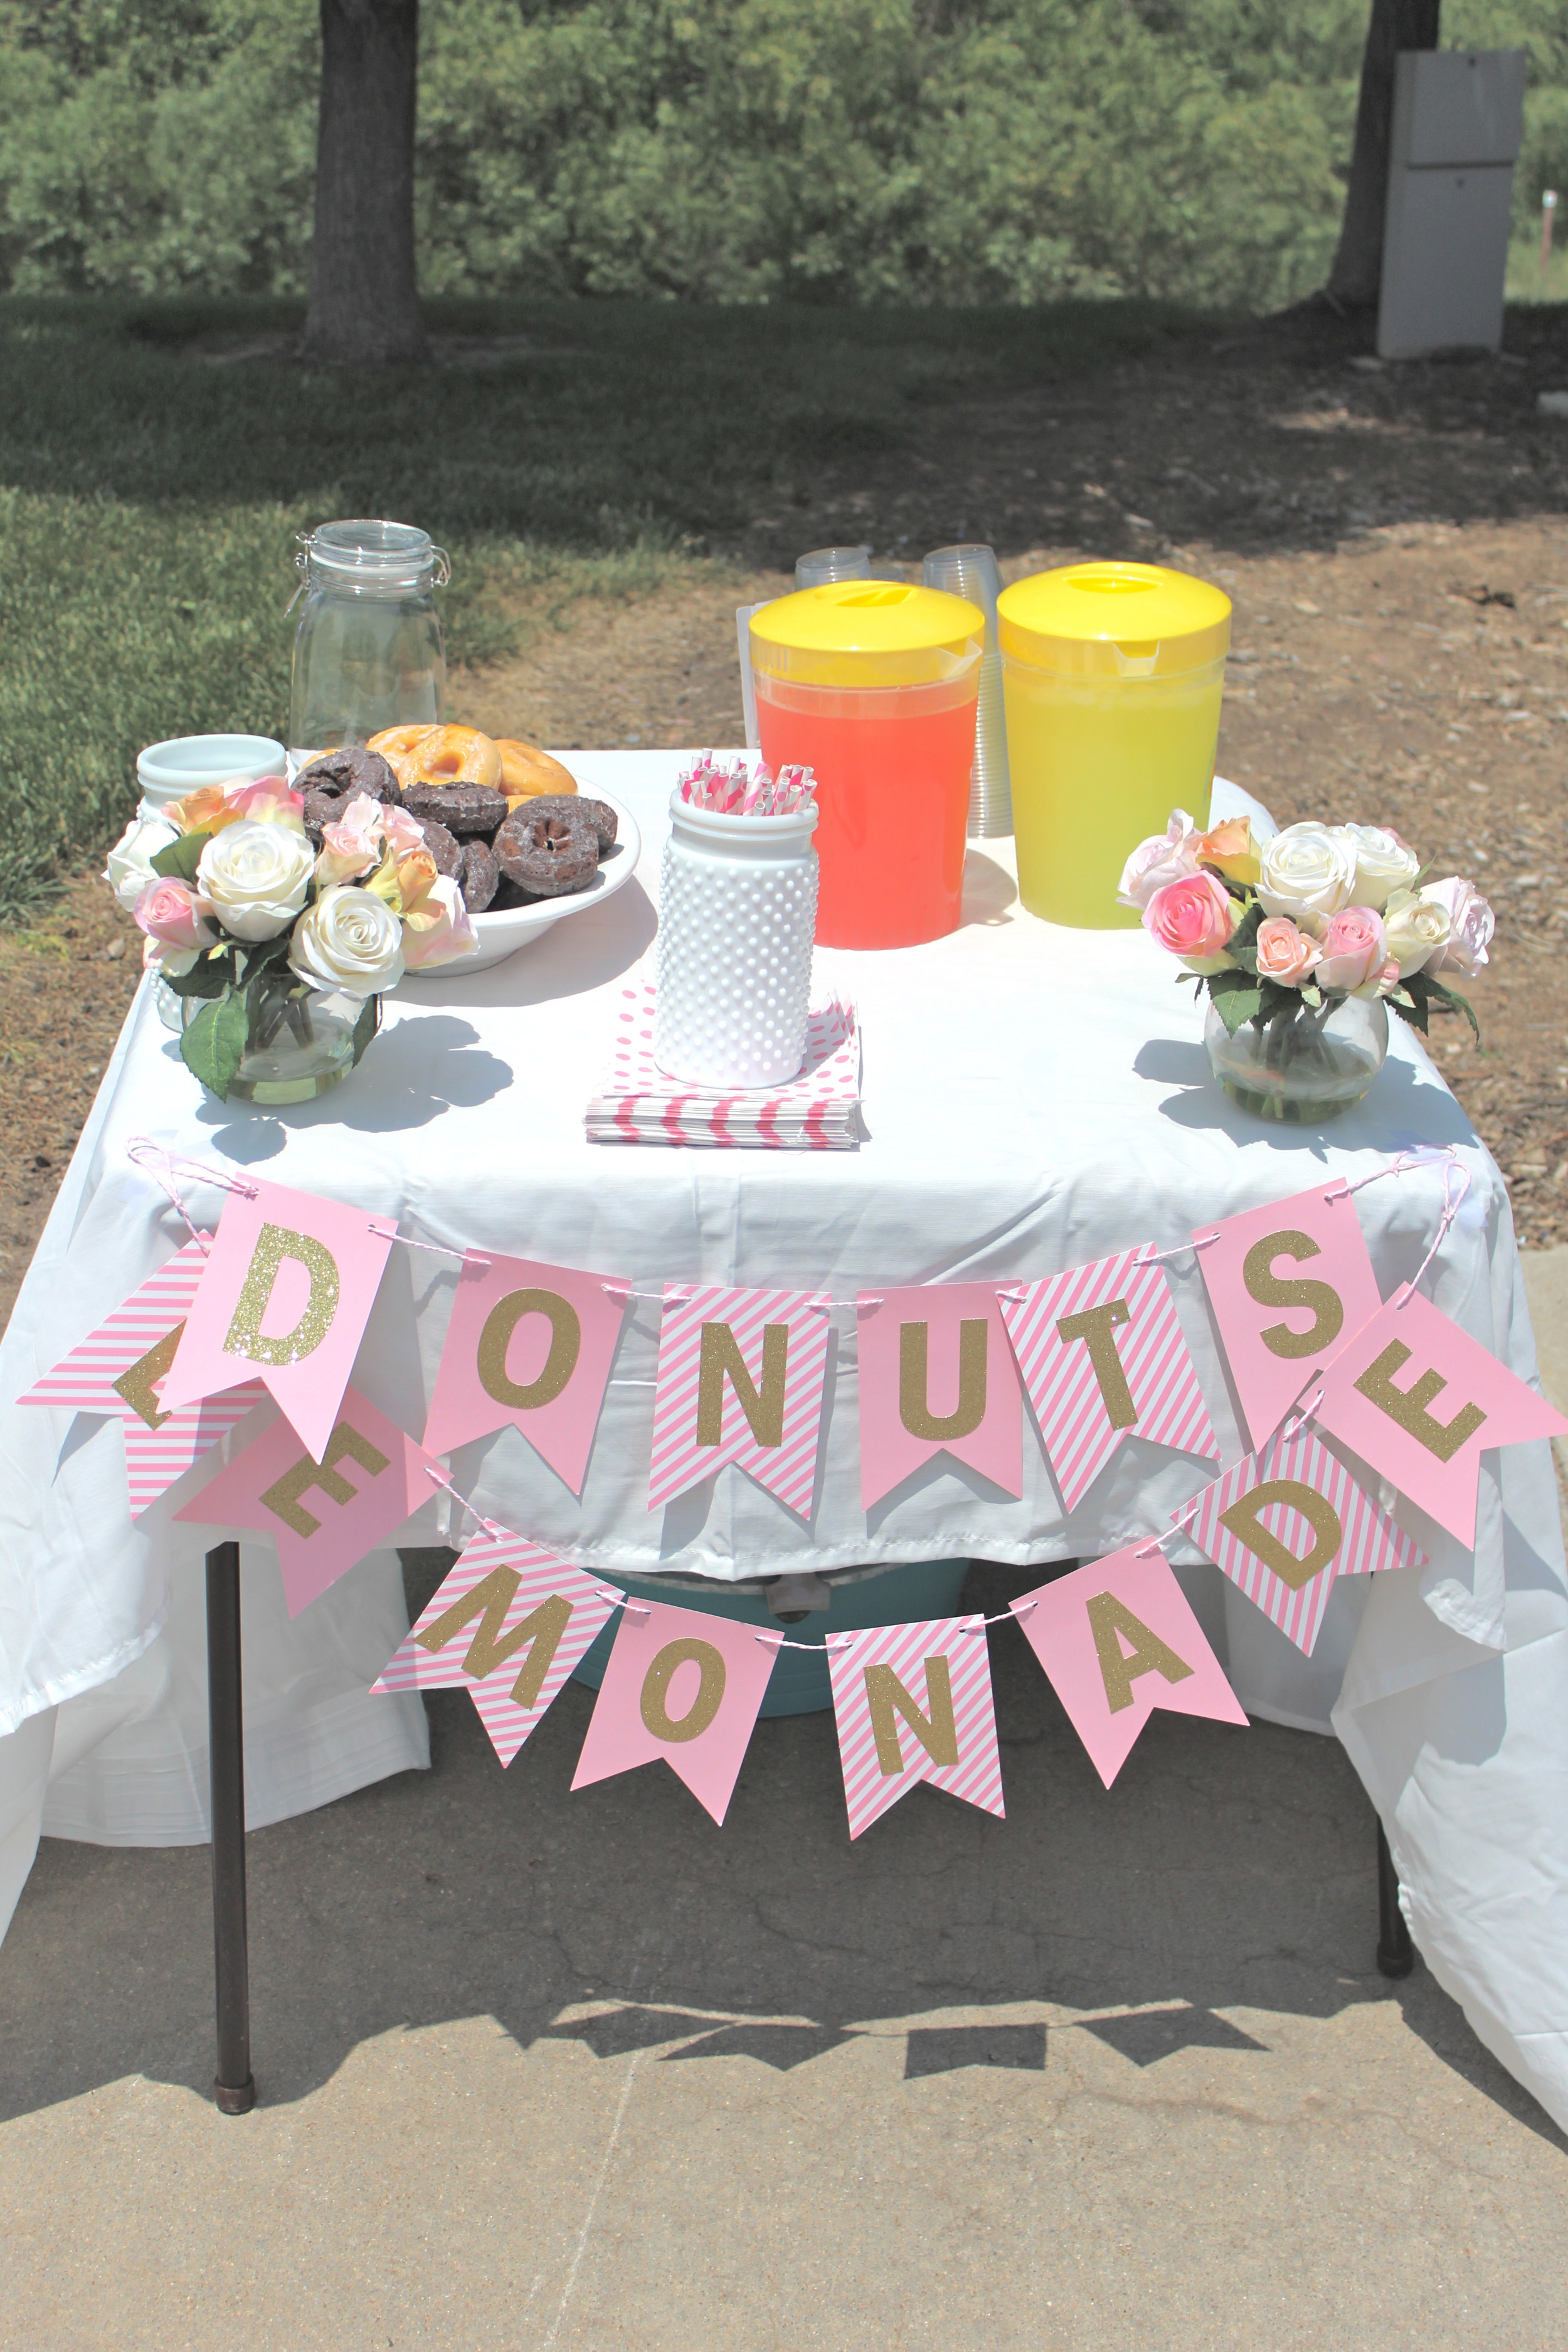 """Added donuts for the extra """"wow-factor"""" that would get the cars to stop - kids made $30 this day!"""